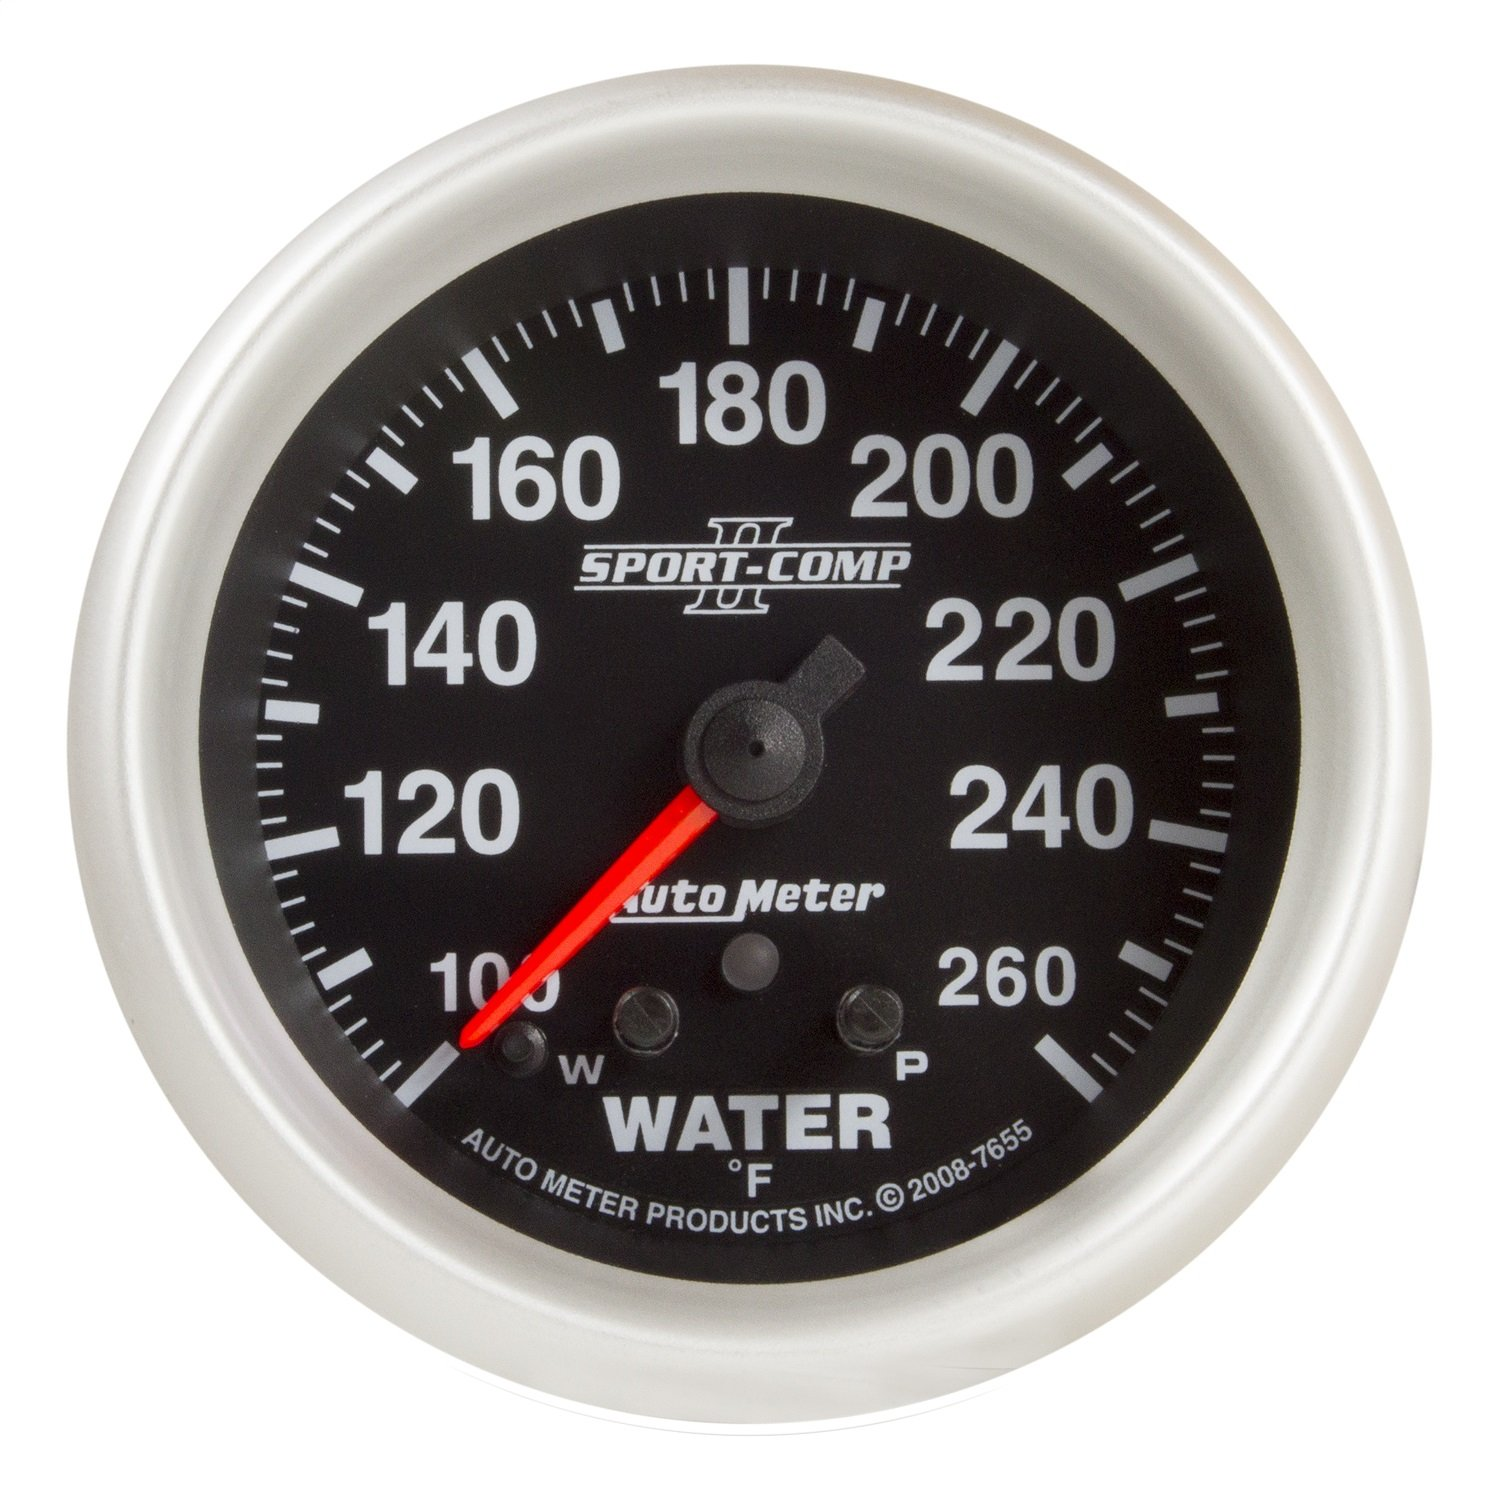 Auto Meter 7655 Sport-Comp II 2-5//8 100-260 Degree F Full Sweep Electric Water Temperature Gauge with Peak Memory and Warning